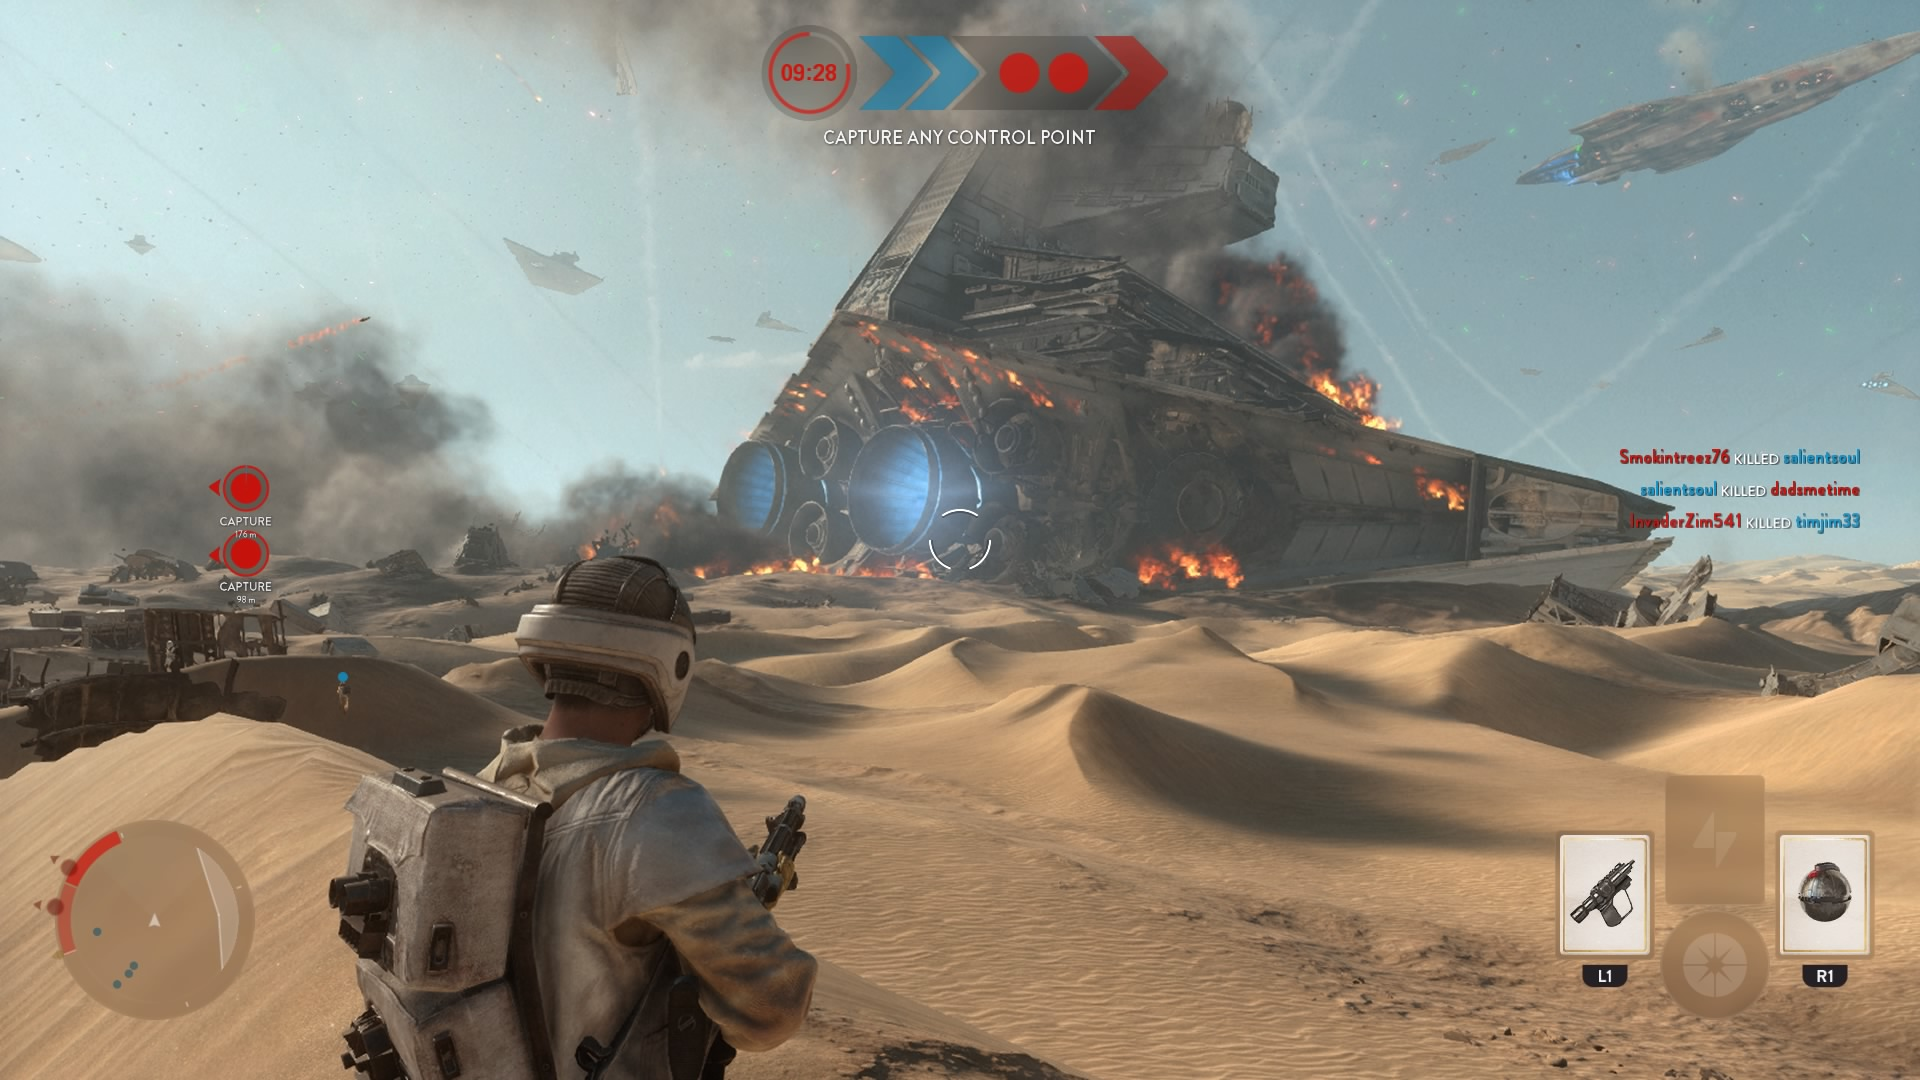 Awaken The Hype With 2015 S Best Star Wars Games Gamesbeat Games By Giancarlo Valdes